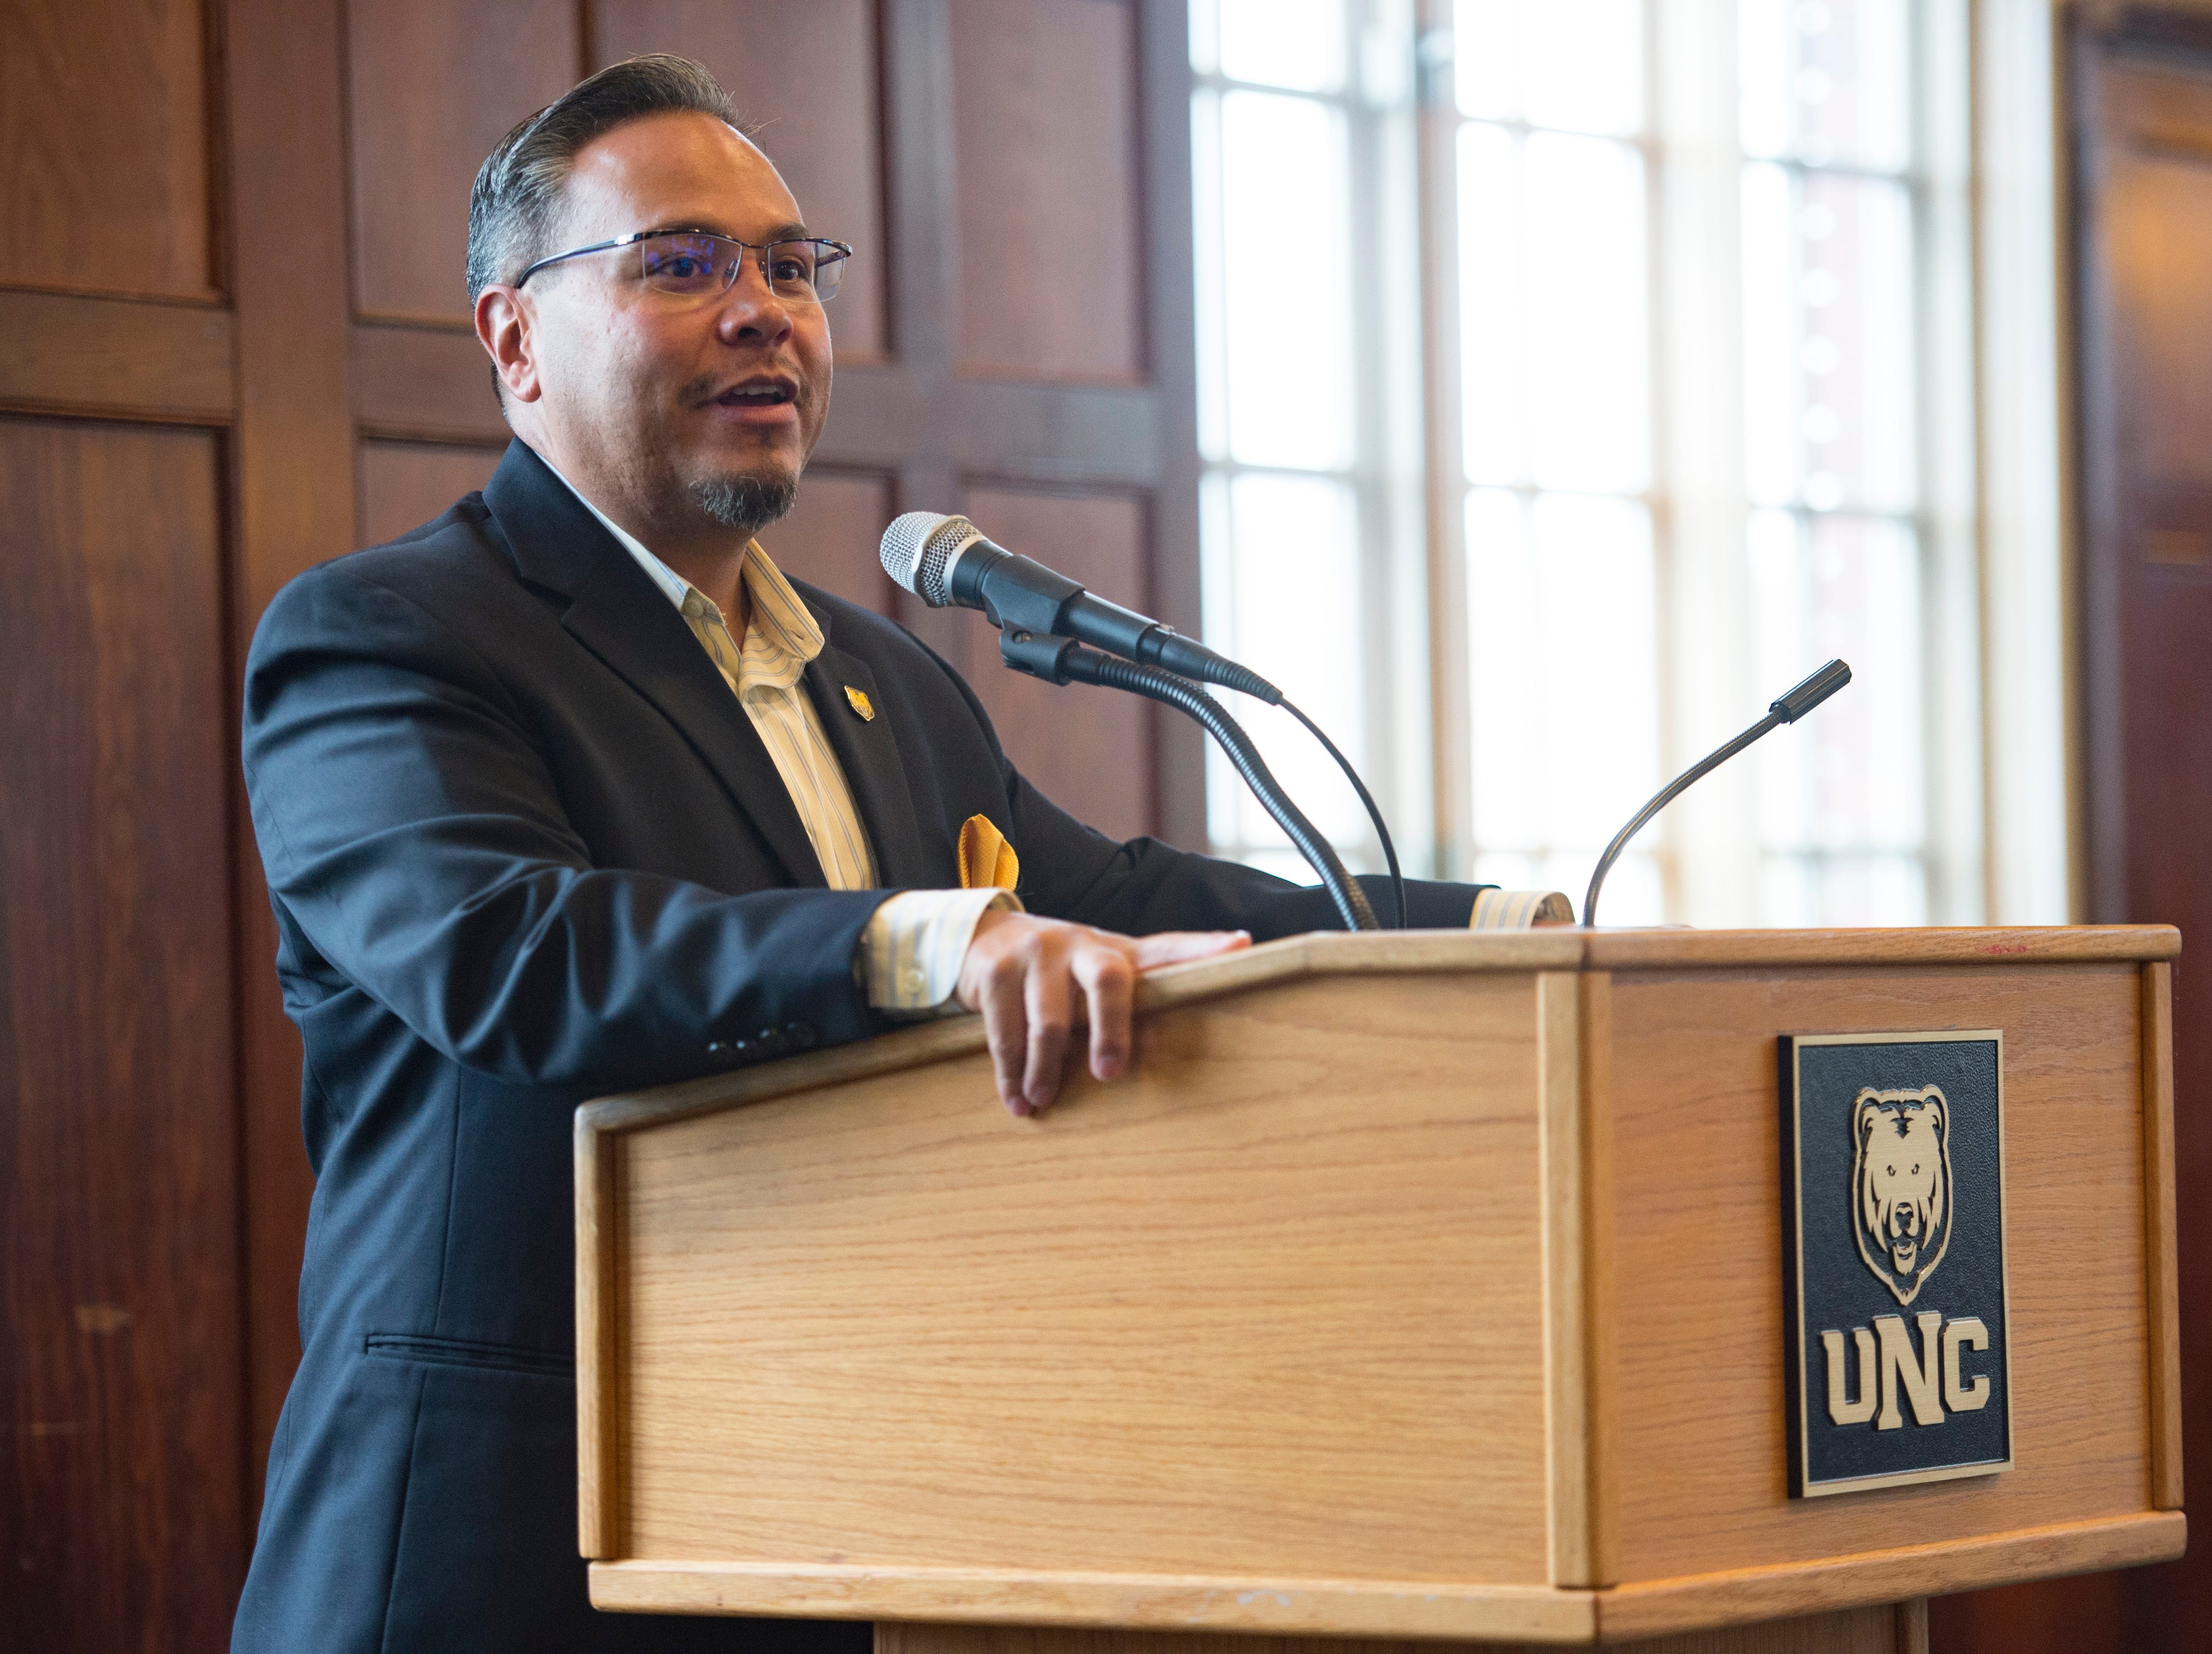 Tobias Guzman, Assistant Vice President of Enrollment Management and Student Access at UNC, speaks during the Coloradoan's First Class banquet at the University of Northern Colorado in Greeley on Saturday, October 6, 2018. First Class is a program that supports first-generation students in Northern Colorado. The program is now in its third year and is a partnership between The Coloradoan and Aims Community College, Fort Collins Lions Club, Front Range Community College, Colorado State University, Canvas Credit Union (formerly Public Service Credit Union) and University of Northern Colorado.